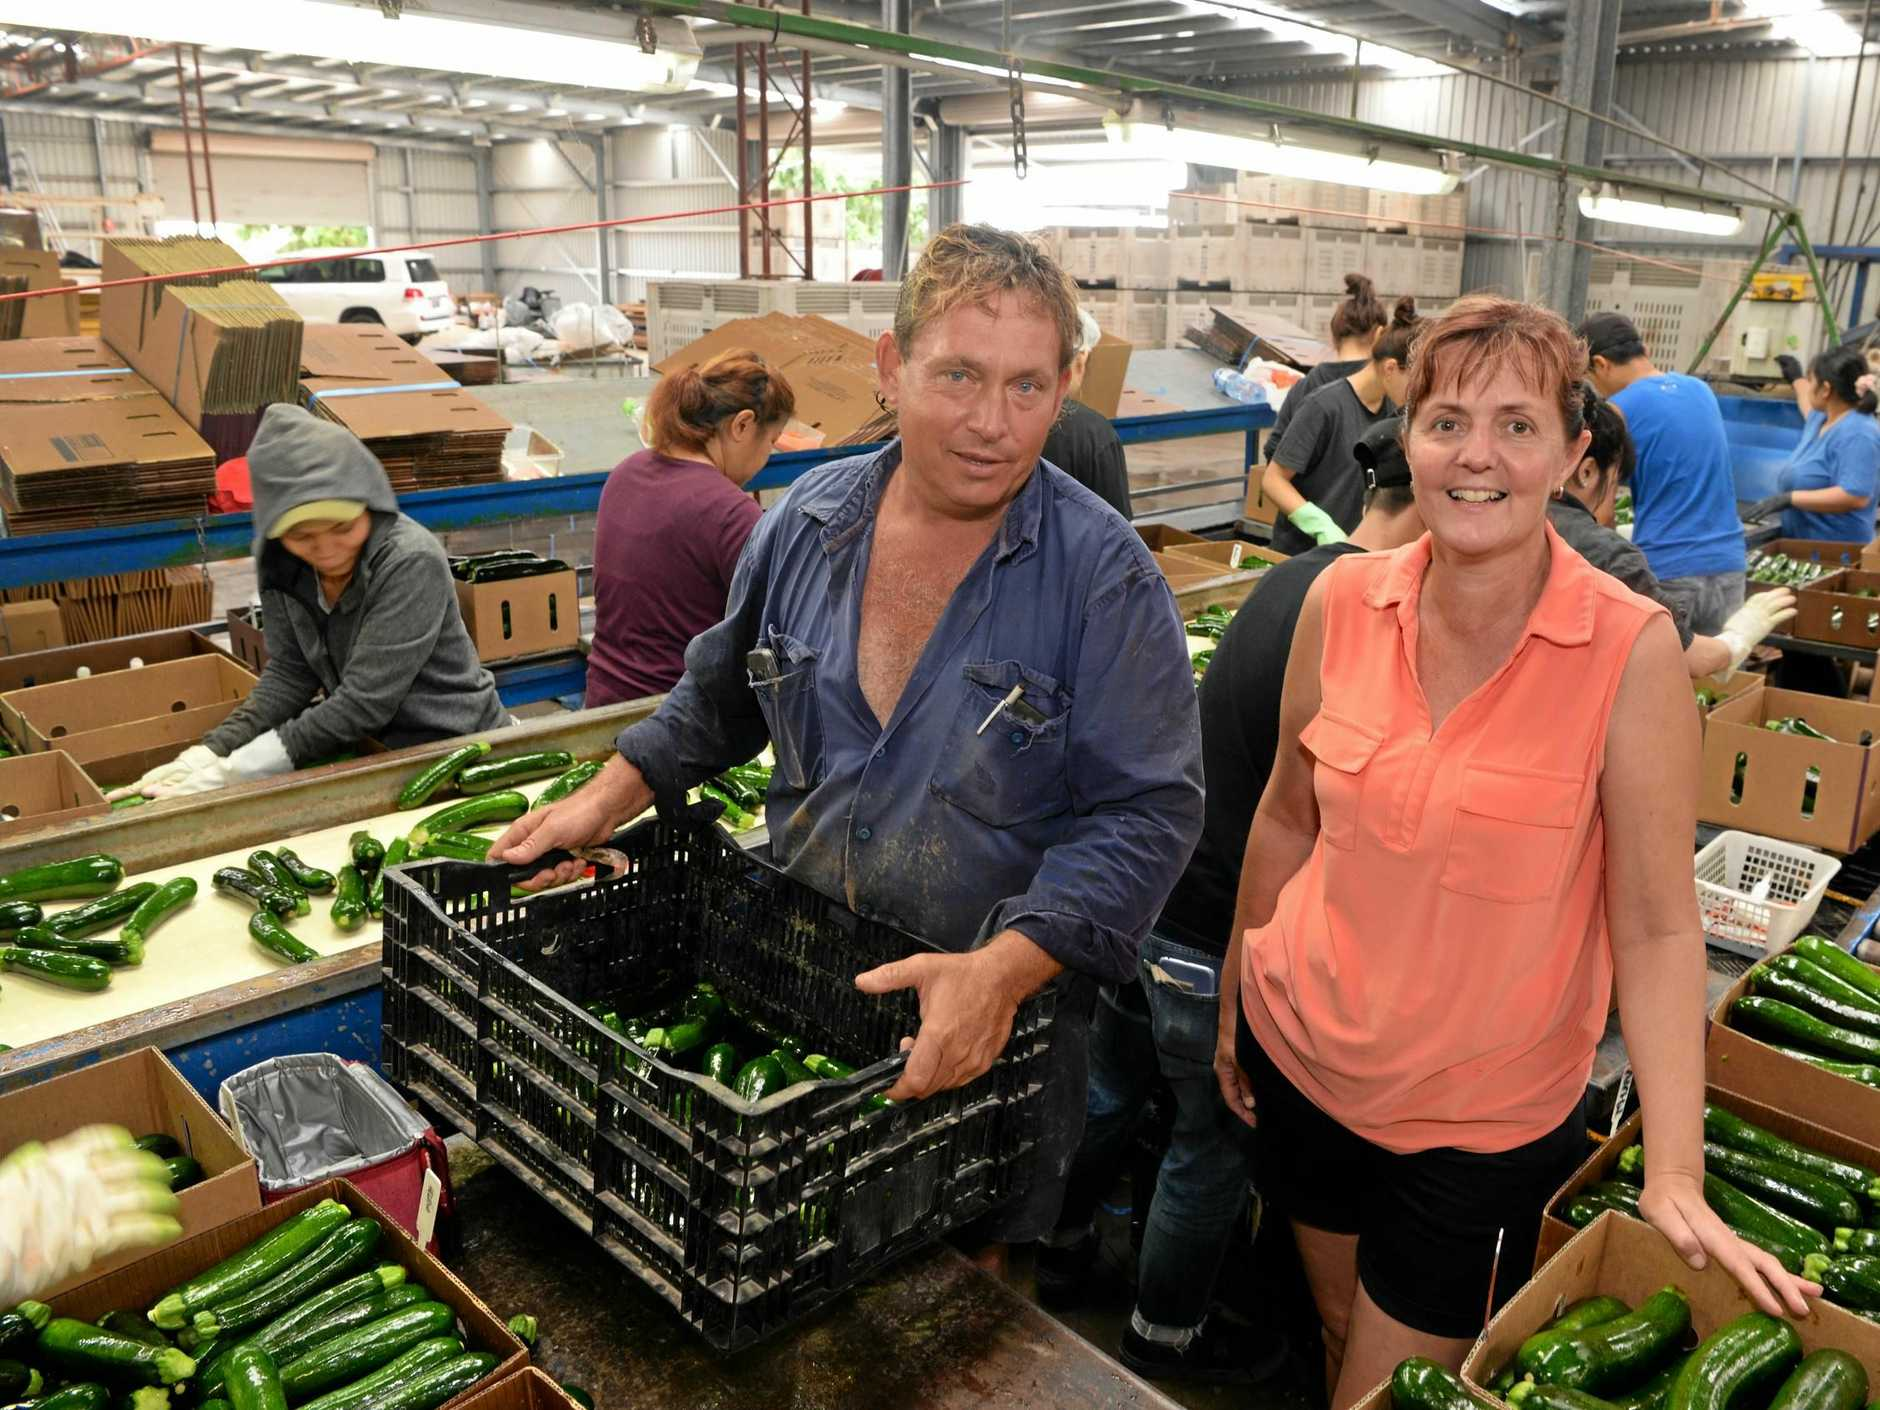 Trevor and Wendy Cross donate about 1300 tonnes of vegetables and fruits to Foodbank each year. The produce is given to Australians who cannot afford to buy food.